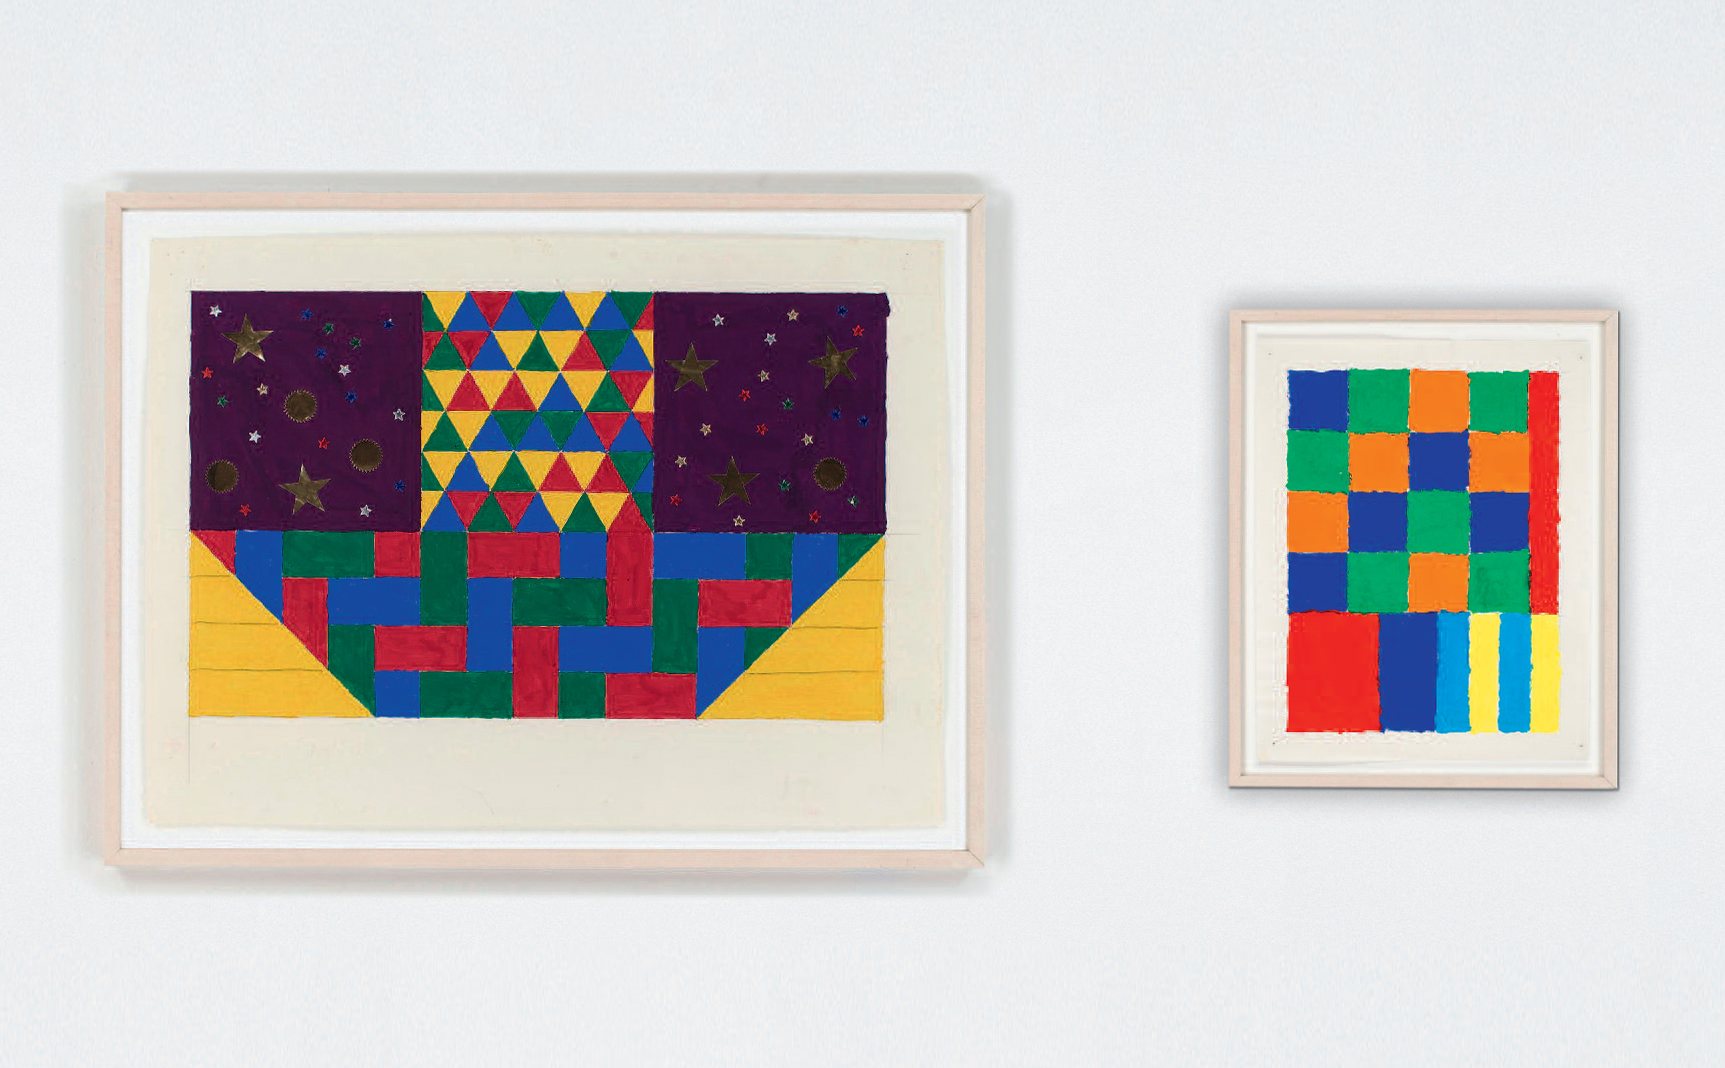 FEB 2018PETER HALLEY. PATTERNS AND FIGURES, GOUACHES 1977/78Galerie Thomas, Munich - Through April 7th. Link.